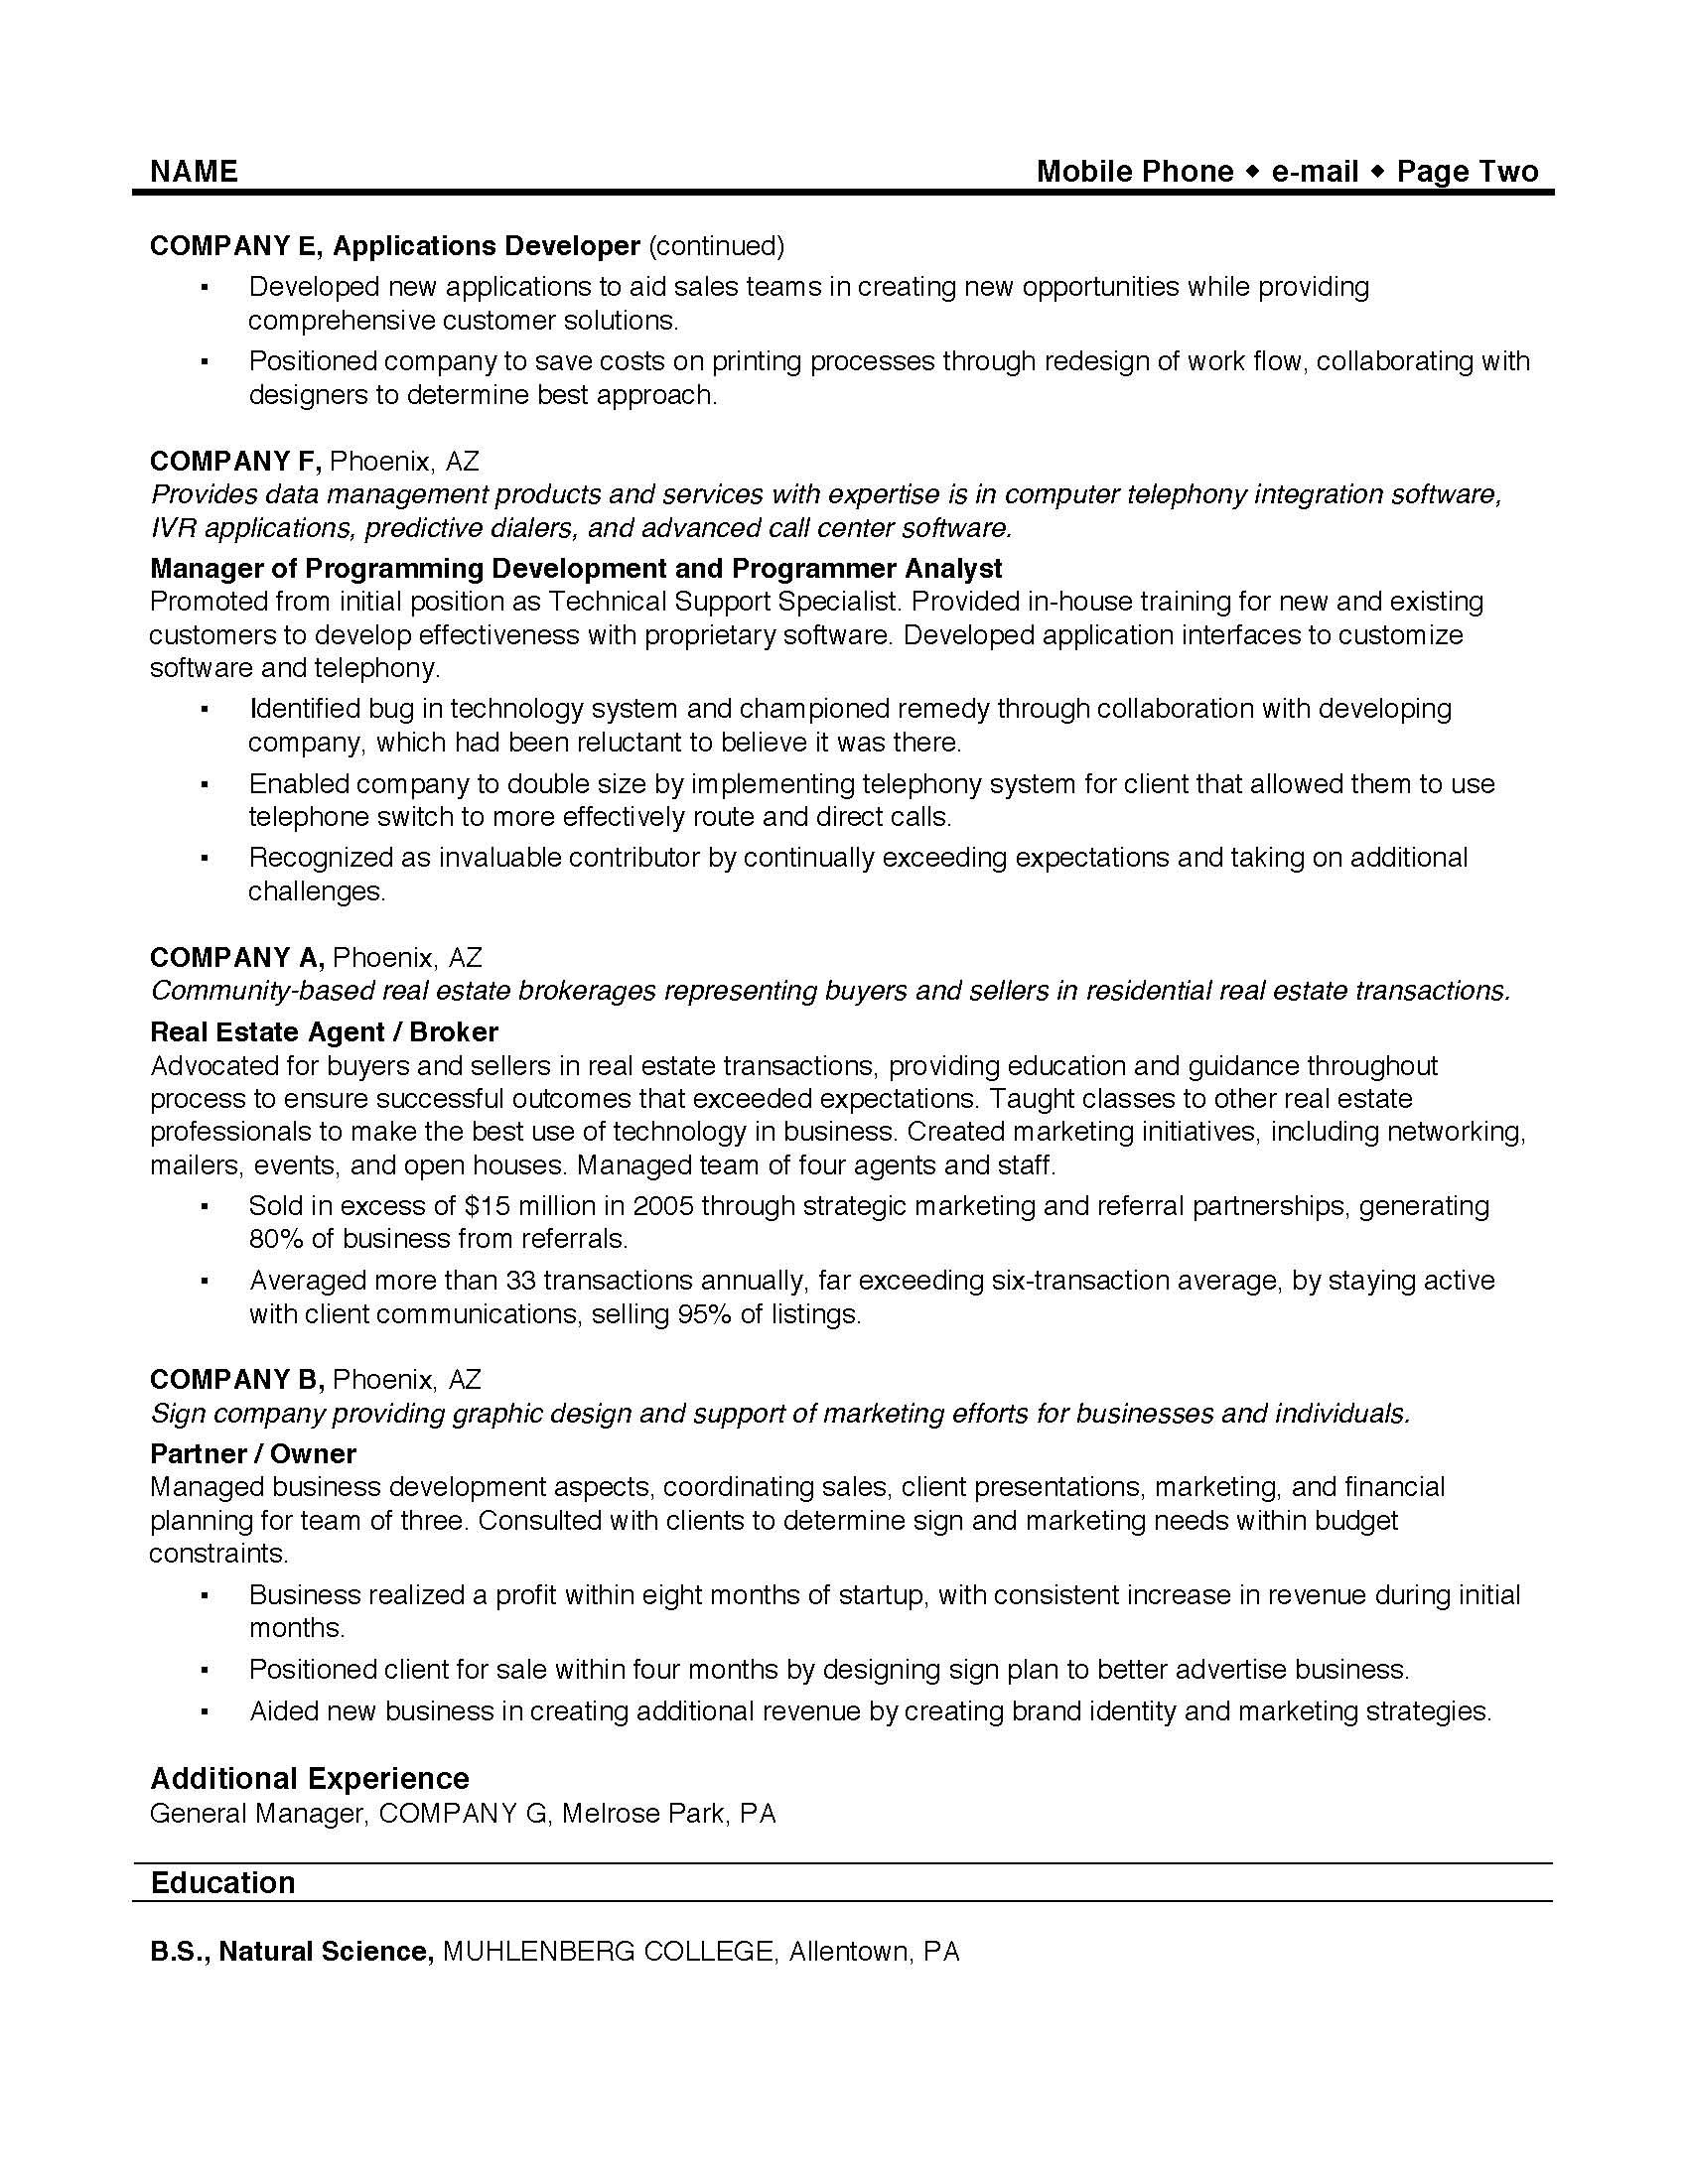 Accounting Student Resume Pics Photos Sample College Student Resume Examples Samples Resumes